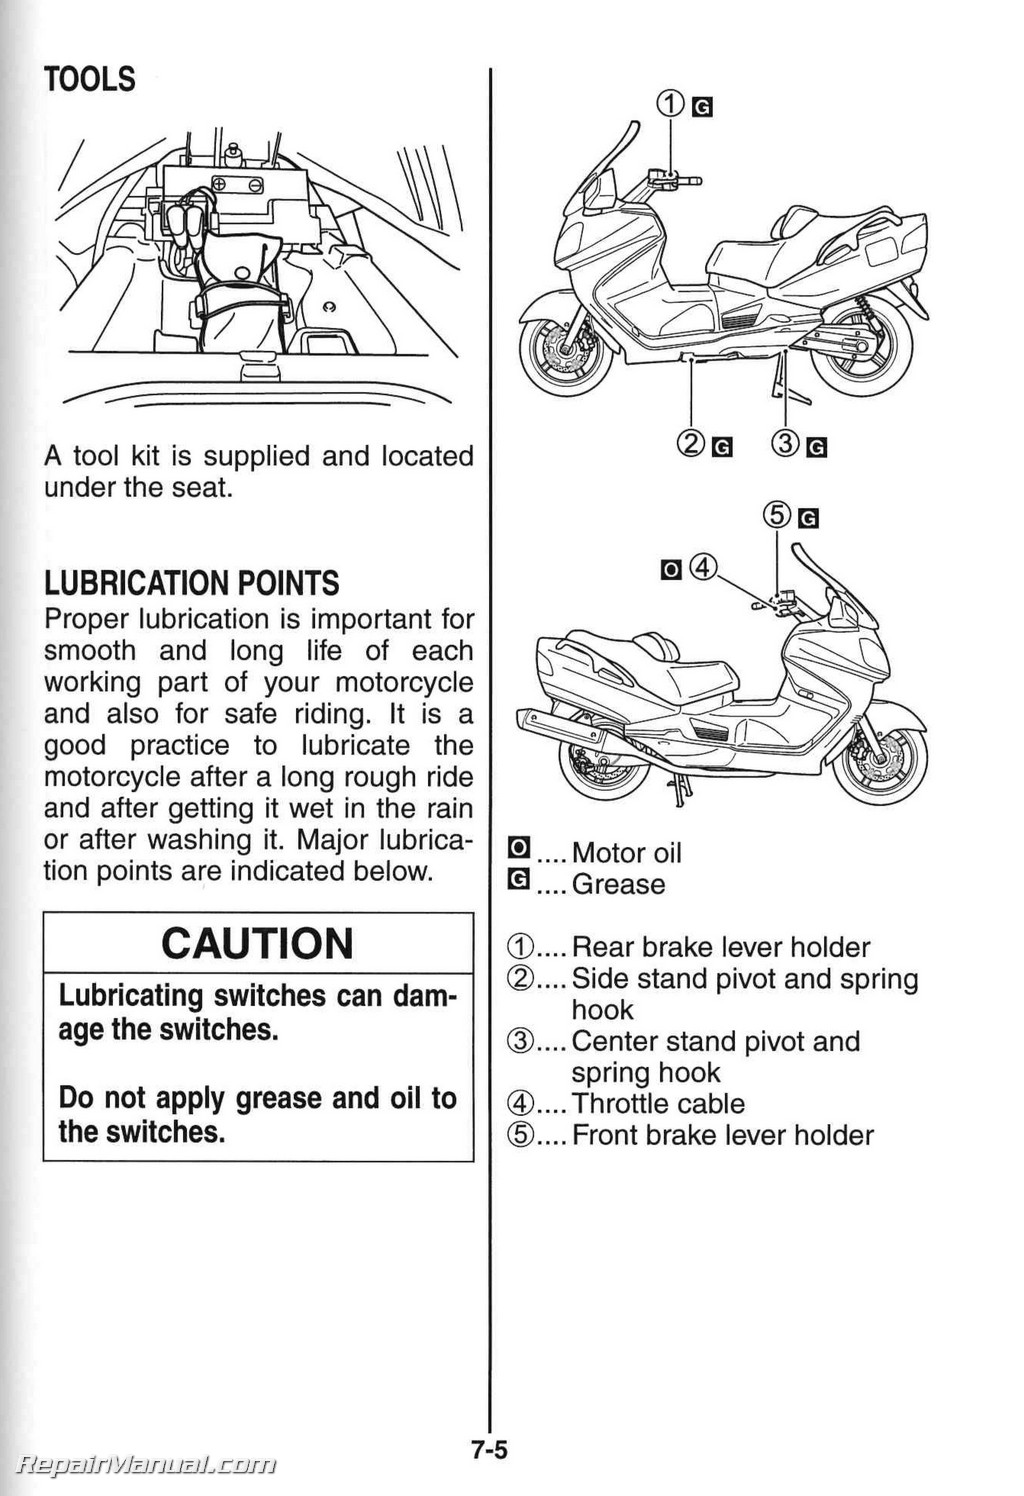 Suzuki An650k7 Burgman Scooter Owners Manual